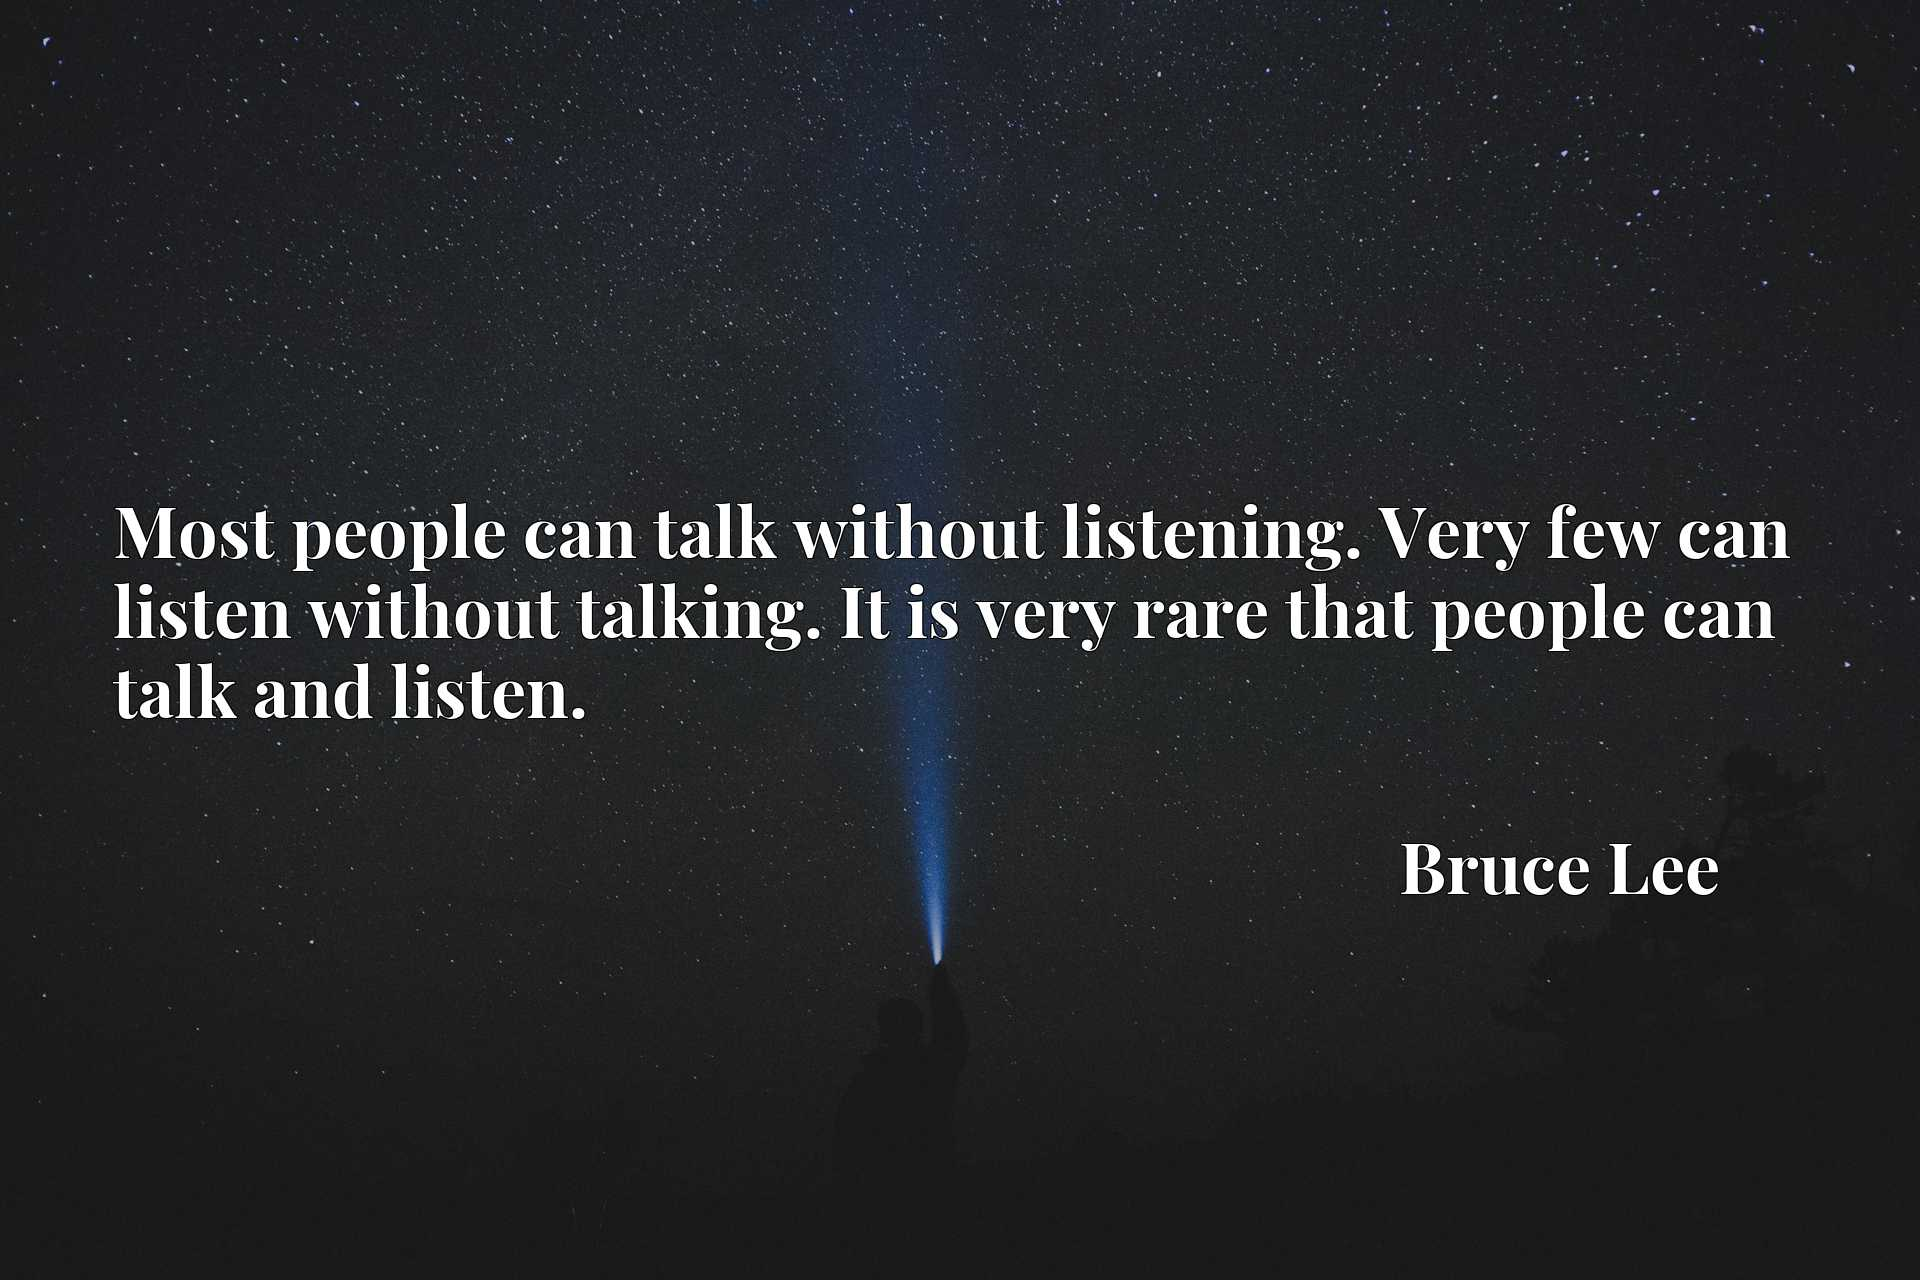 Most people can talk without listening. Very few can listen without talking. It is very rare that people can talk and listen.